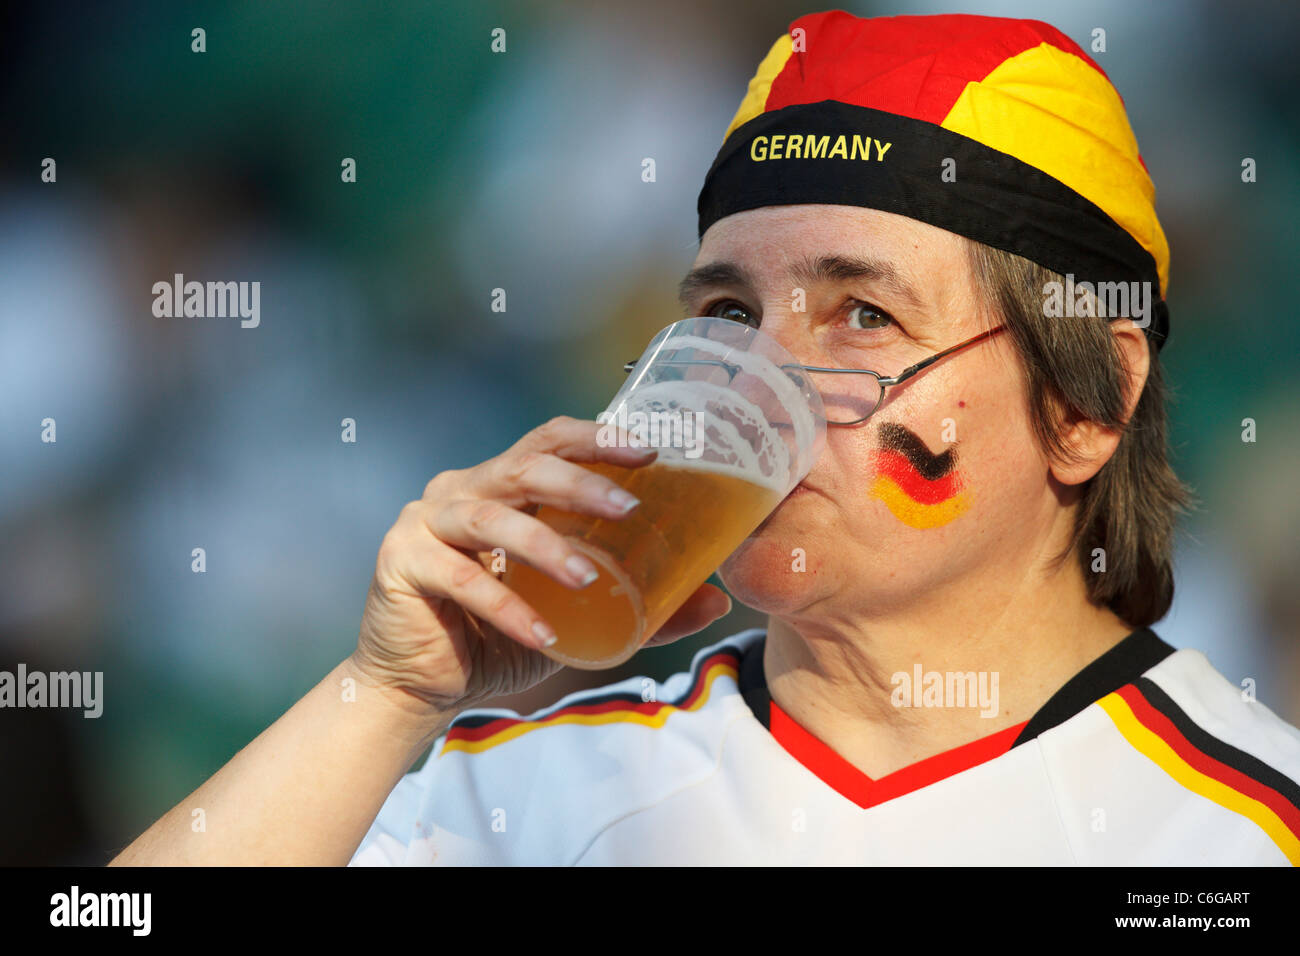 A Germany supporter drinks a glass of beer at a 2011 Women's World Cup quarterfinal soccer match between Germany - Stock Image